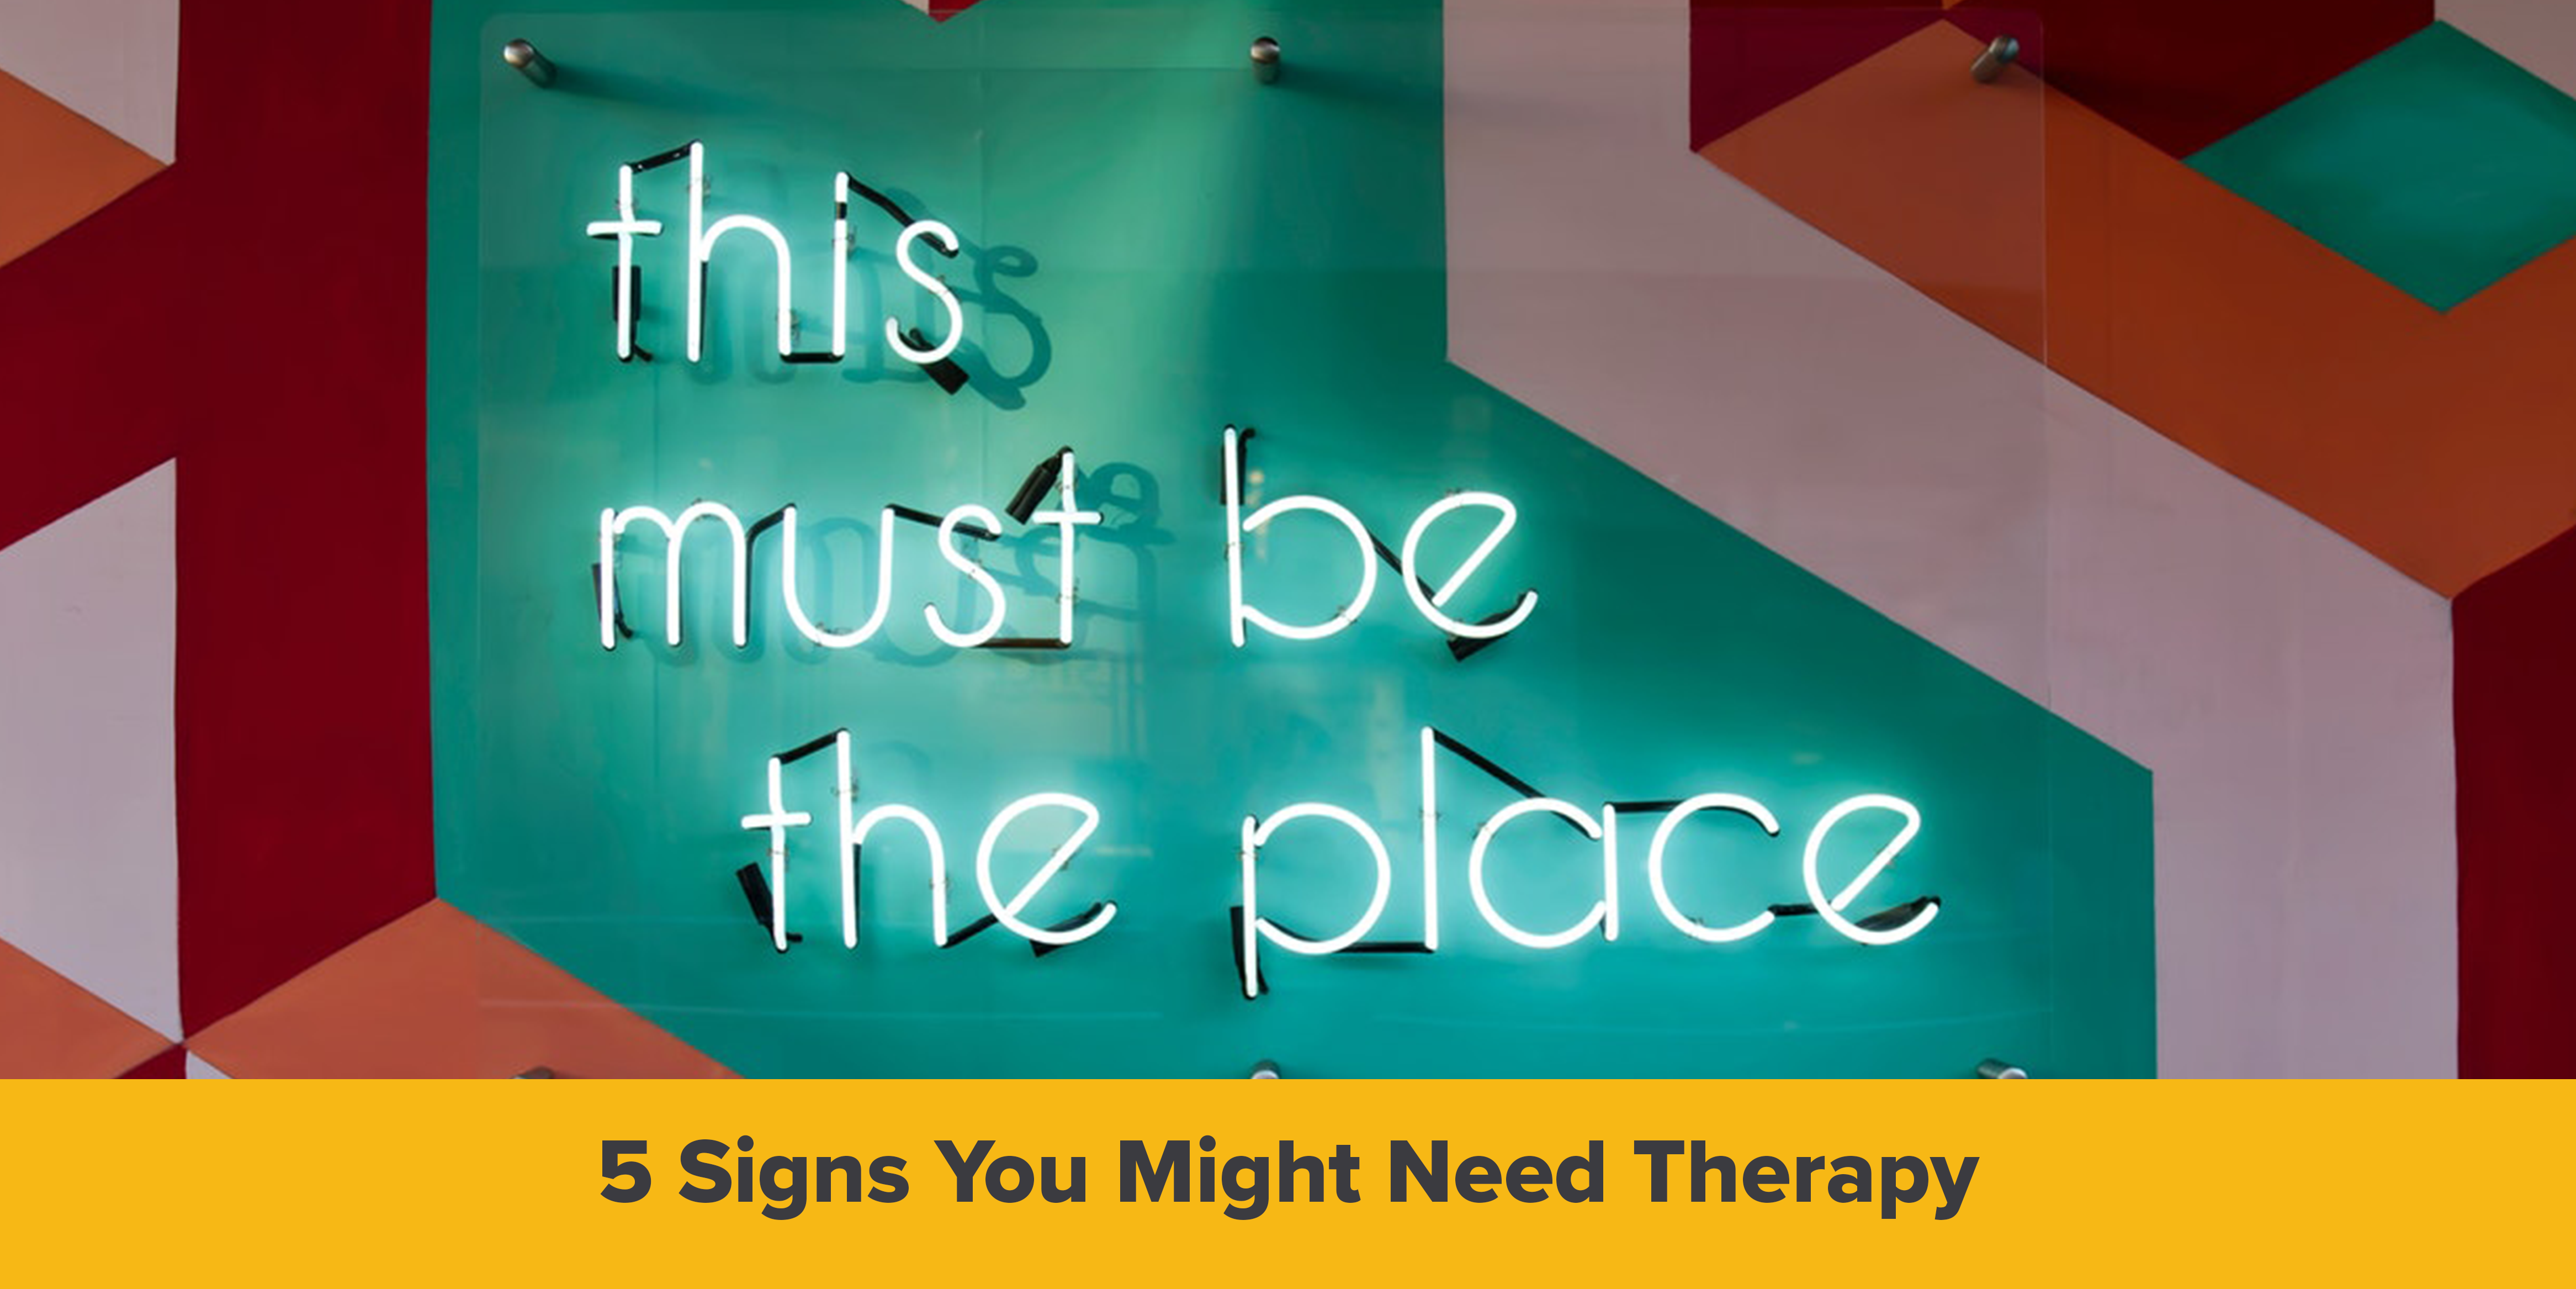 5 Signs You Might Need Therapy